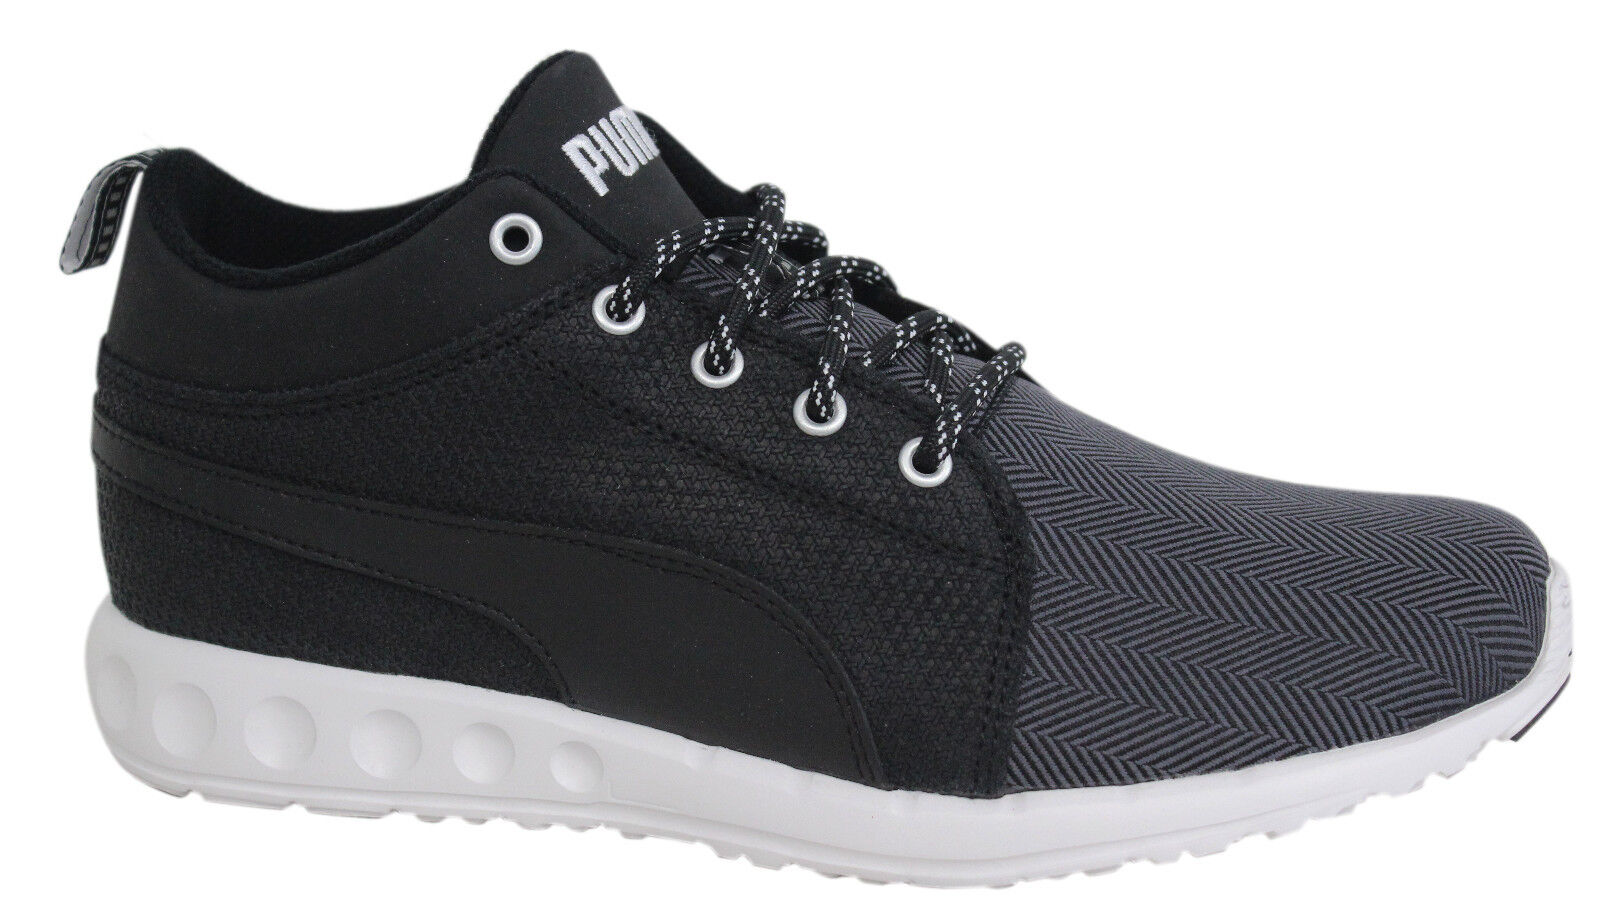 Puma Carson da Corsa Medio Herring con Lacci Nero Scarpe Ginnastica Unisex The most popular shoes for men and women